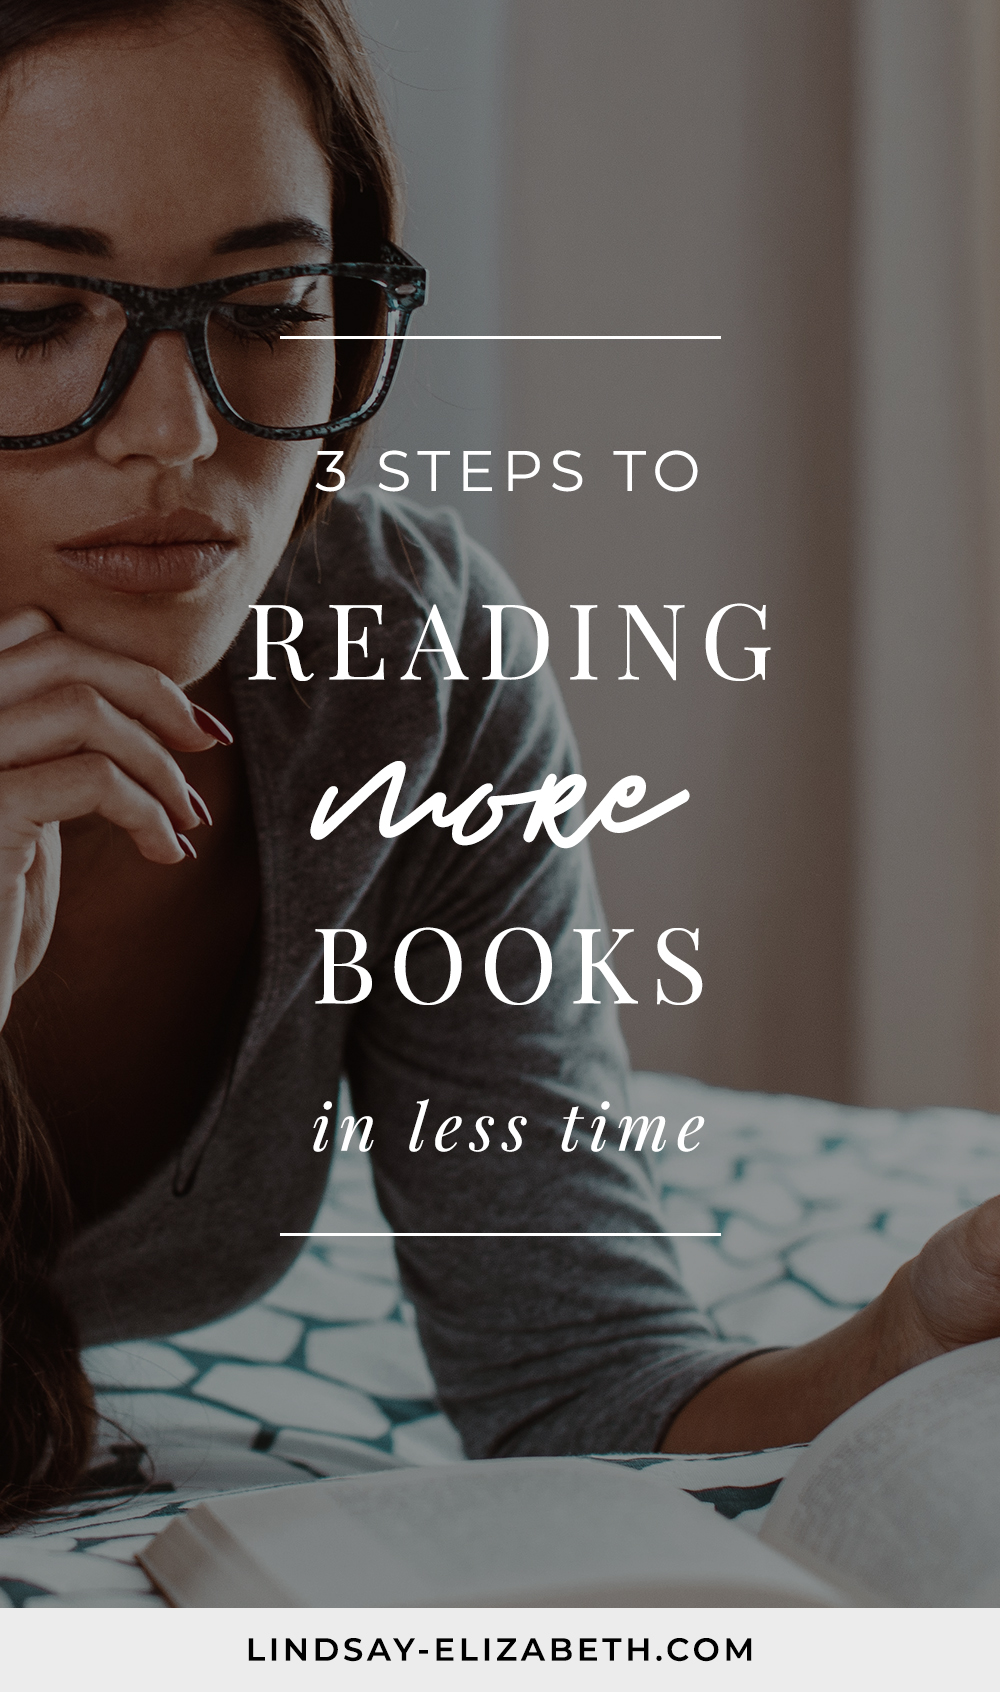 Struggling to find enough time to read and get through your ever-growing TBR pile? I feel you! Even when reading is something you genuinely love and know enriches you, it can be easy for time to get away from us when so much else is fighting for our attention. Try these easy tips and tricks for reading more books in less time. #booklovers #bookish #readingtips